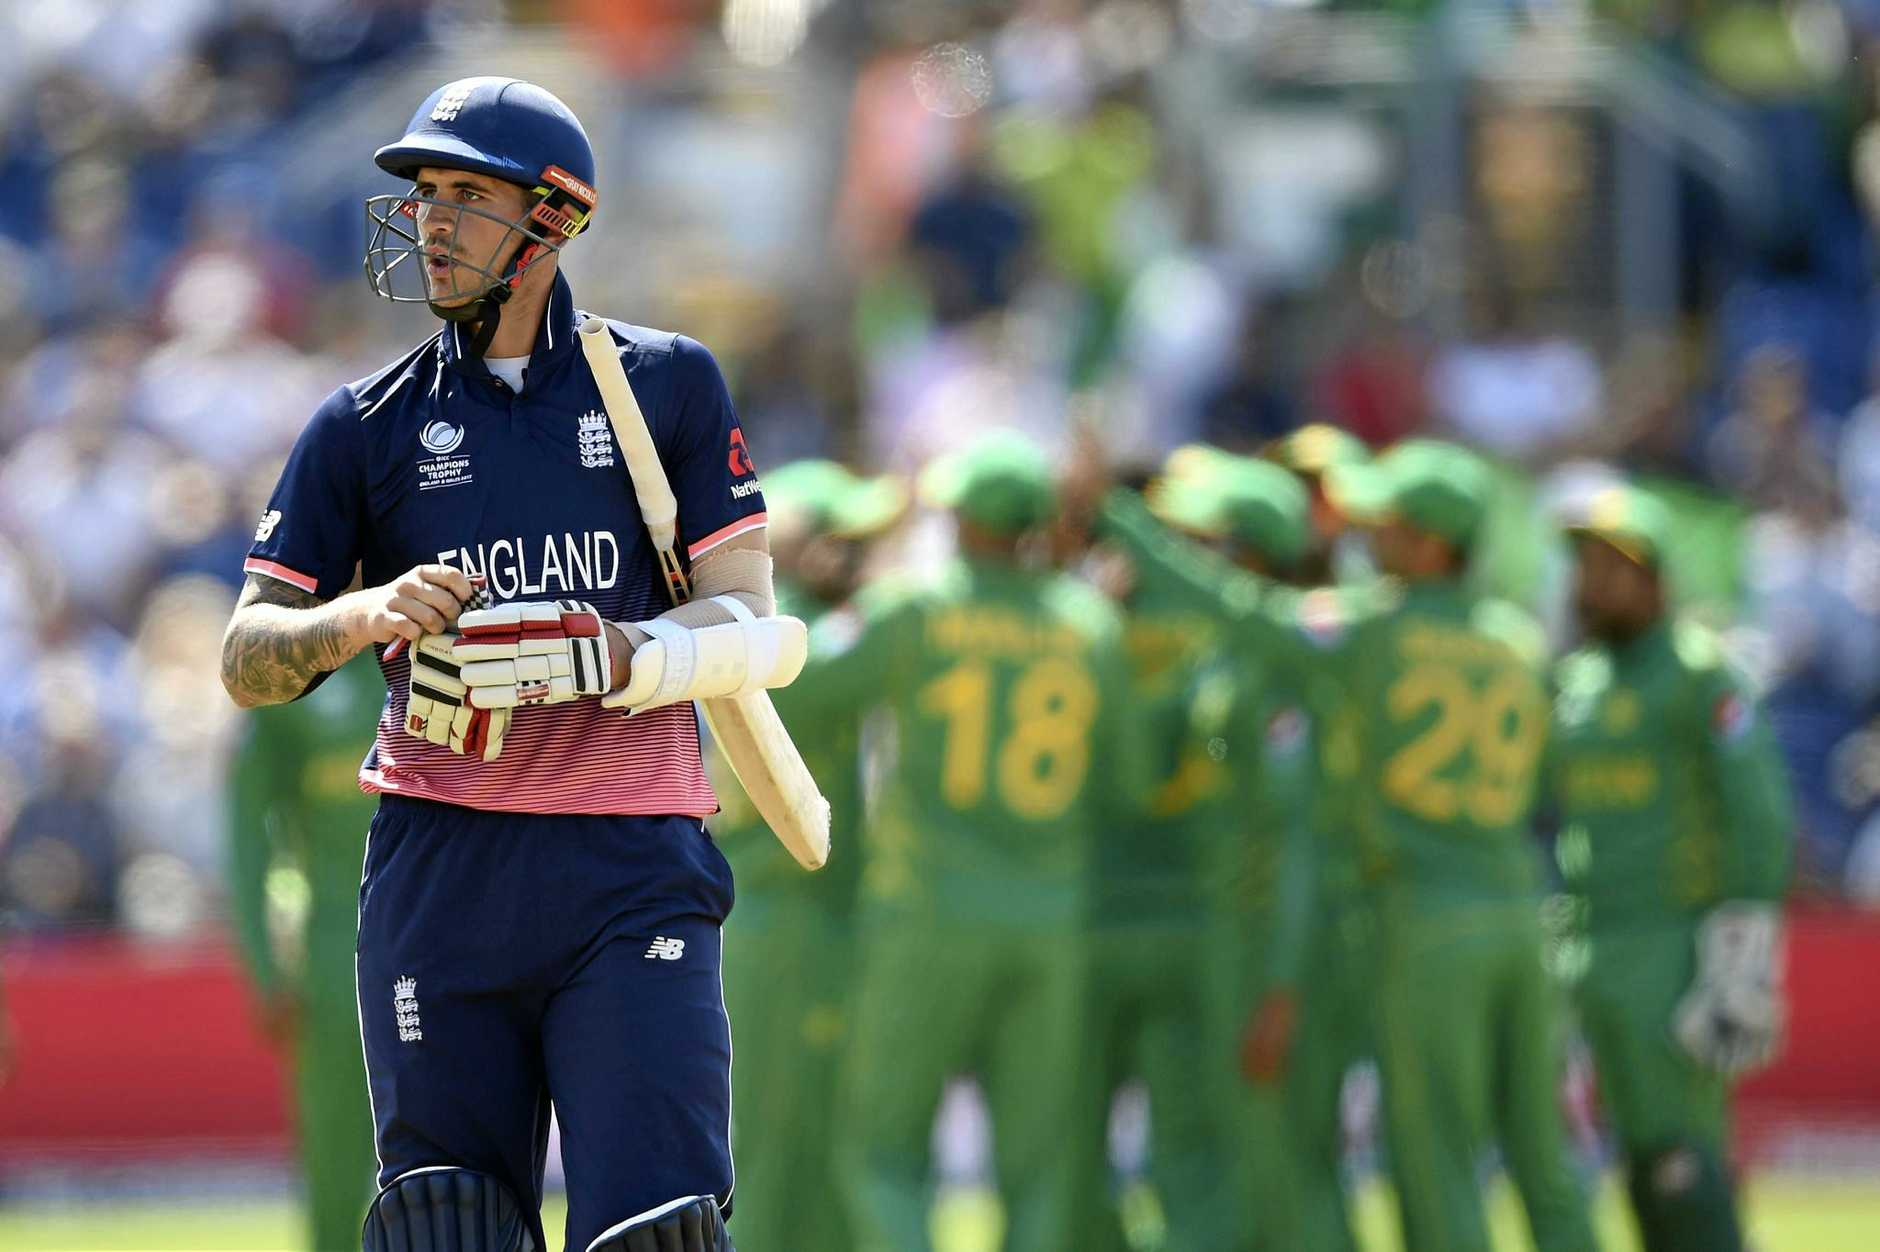 England's Alex Hales leaves the field after being caught out by Pakistan's Shadab Khan during the ICC Champions Trophy semi-final.